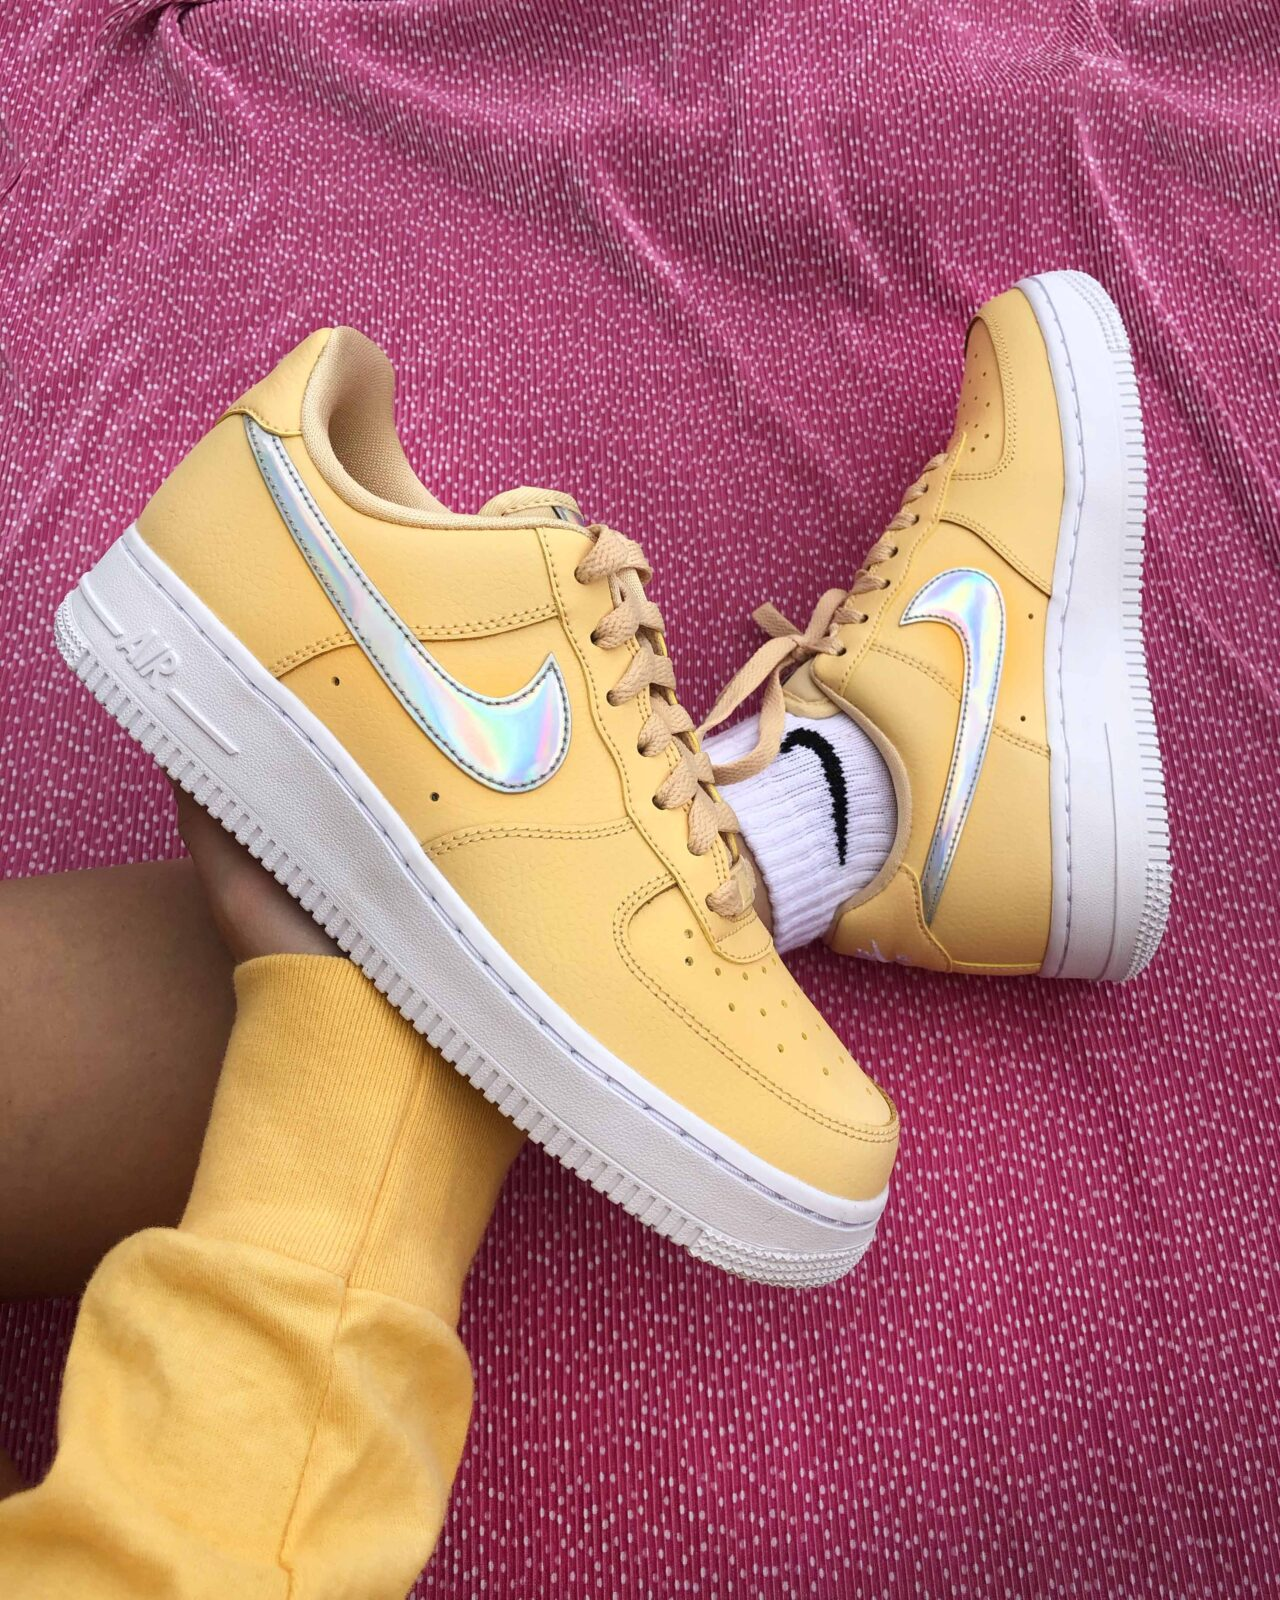 Especialidad Camello Matón  The Zesty Nike Air Force 1 'Lemon Iridescent Swoosh' Is Still In Stock At  ASOS! | The Sole Womens